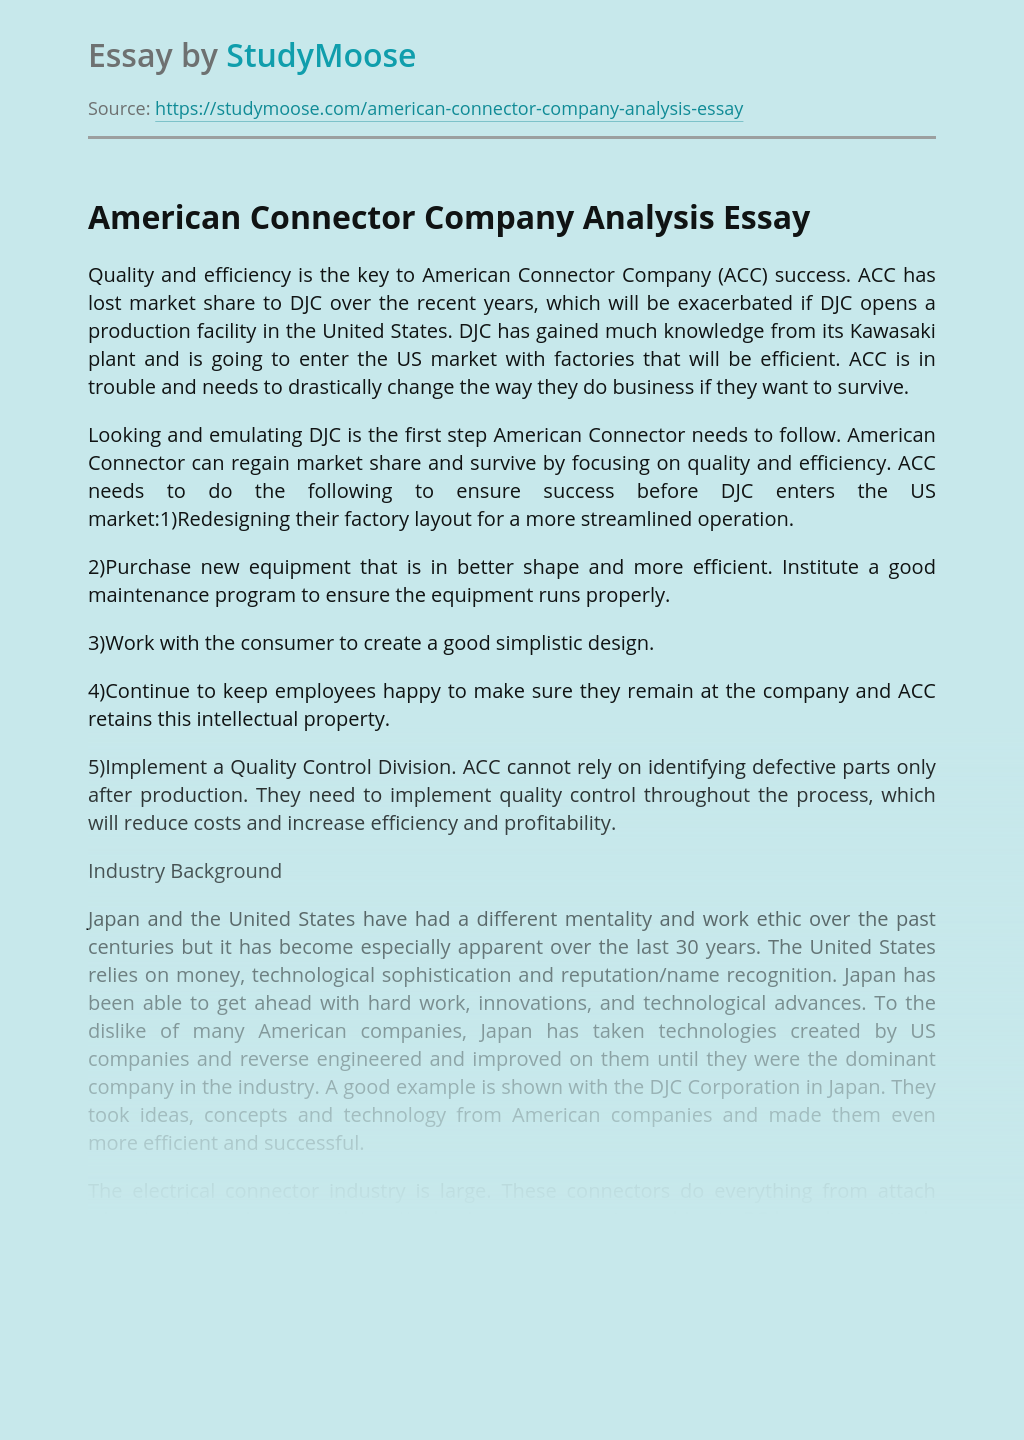 American Connector Company Analysis